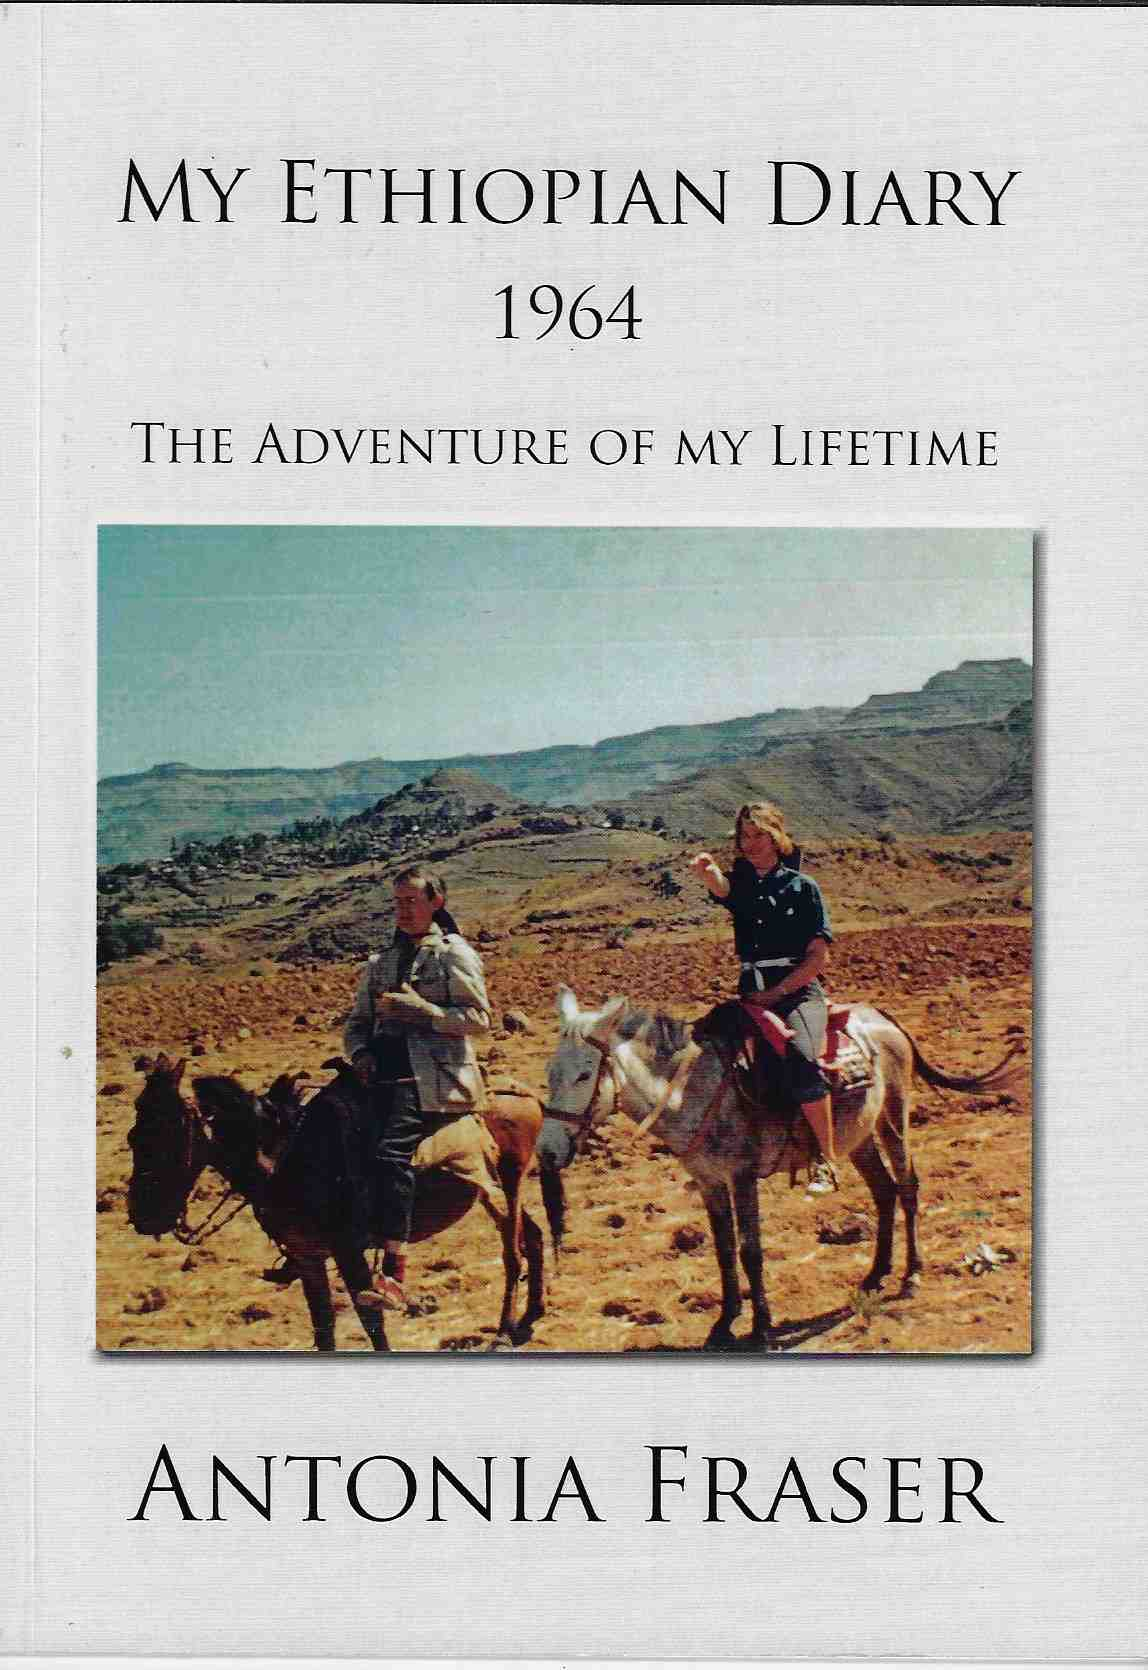 Image for My Ethiopian Diary 1964 [signed] The Adventure of my Lifetime